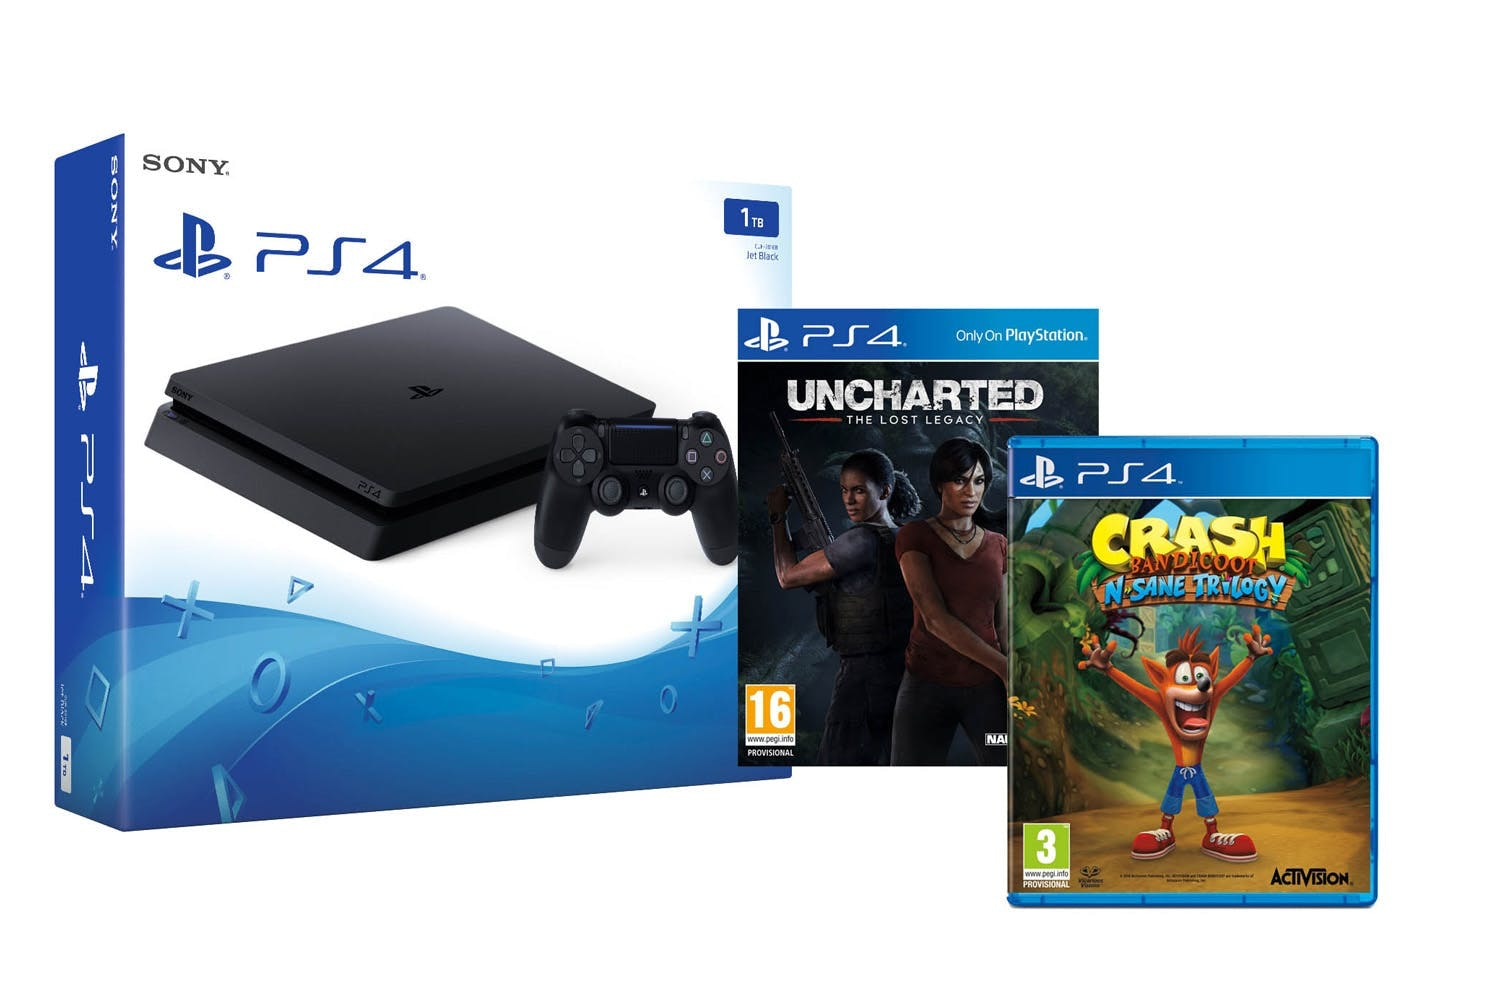 PS4 1TB | Uncharted: Lost Legacy & Crash Bandicoot N.Sane Trilogy